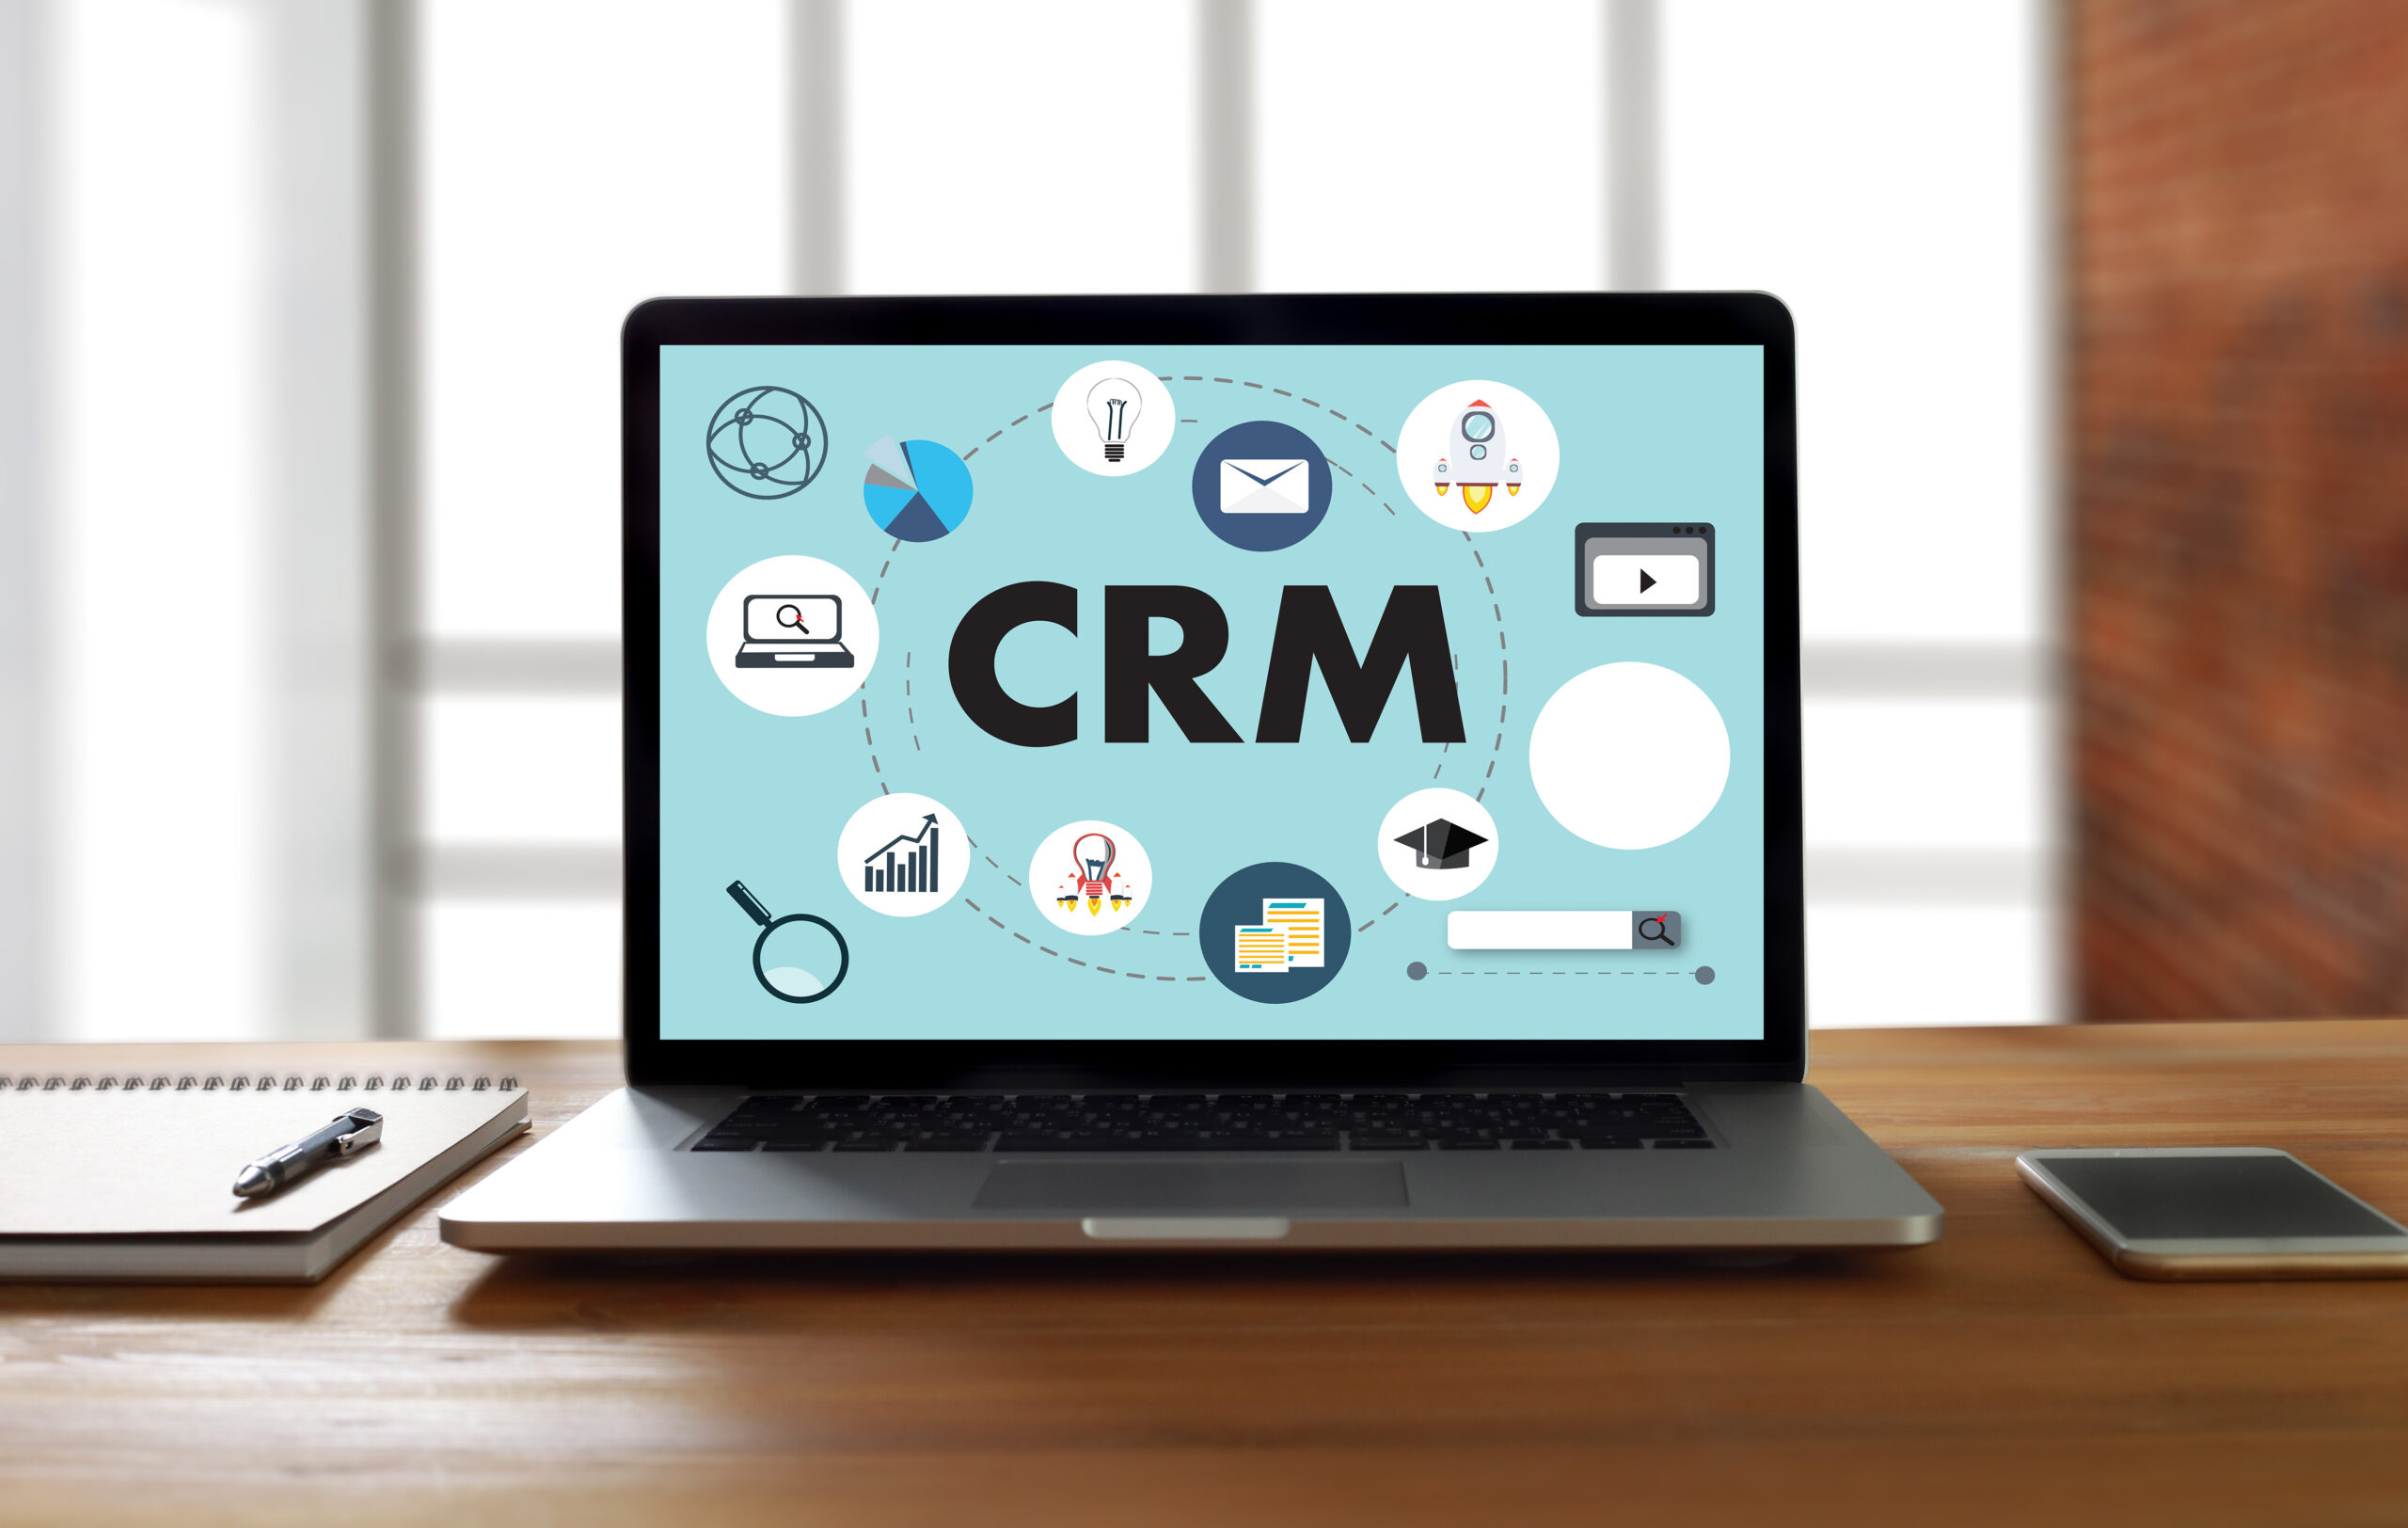 Why Should You Care About CRM?